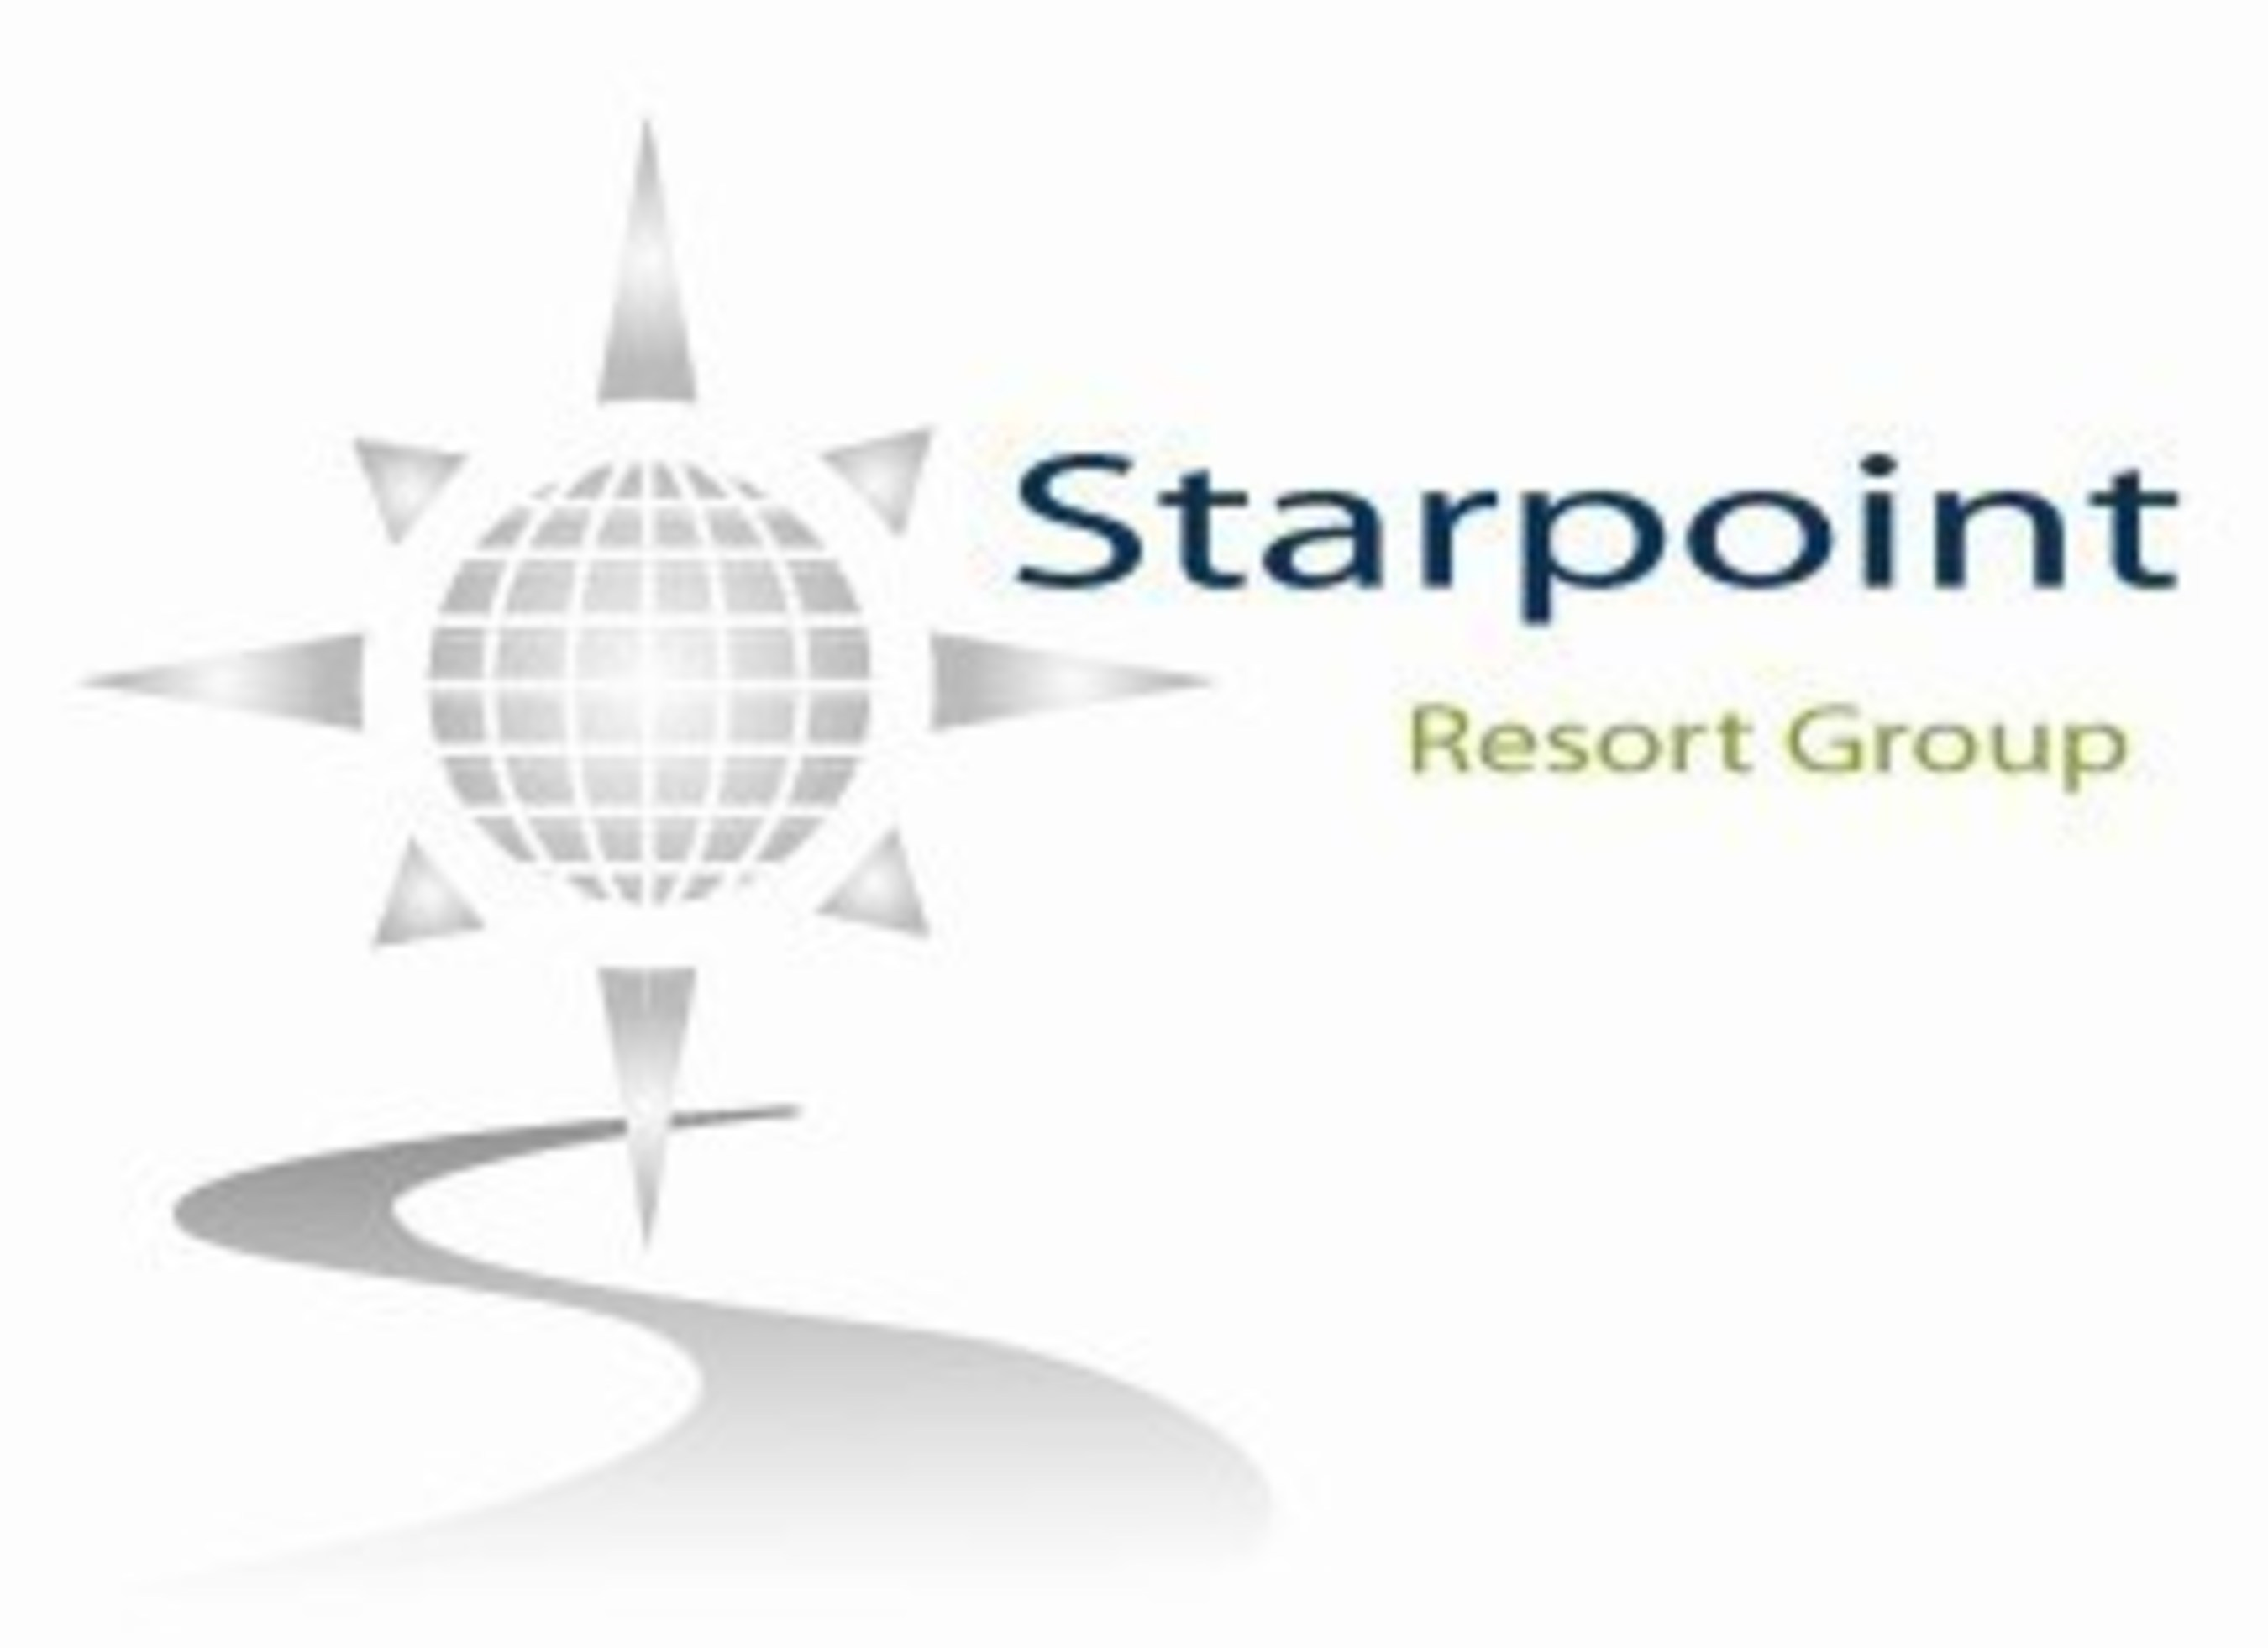 Starpoint Resort Group Reveals Top July Las Vegas Shows